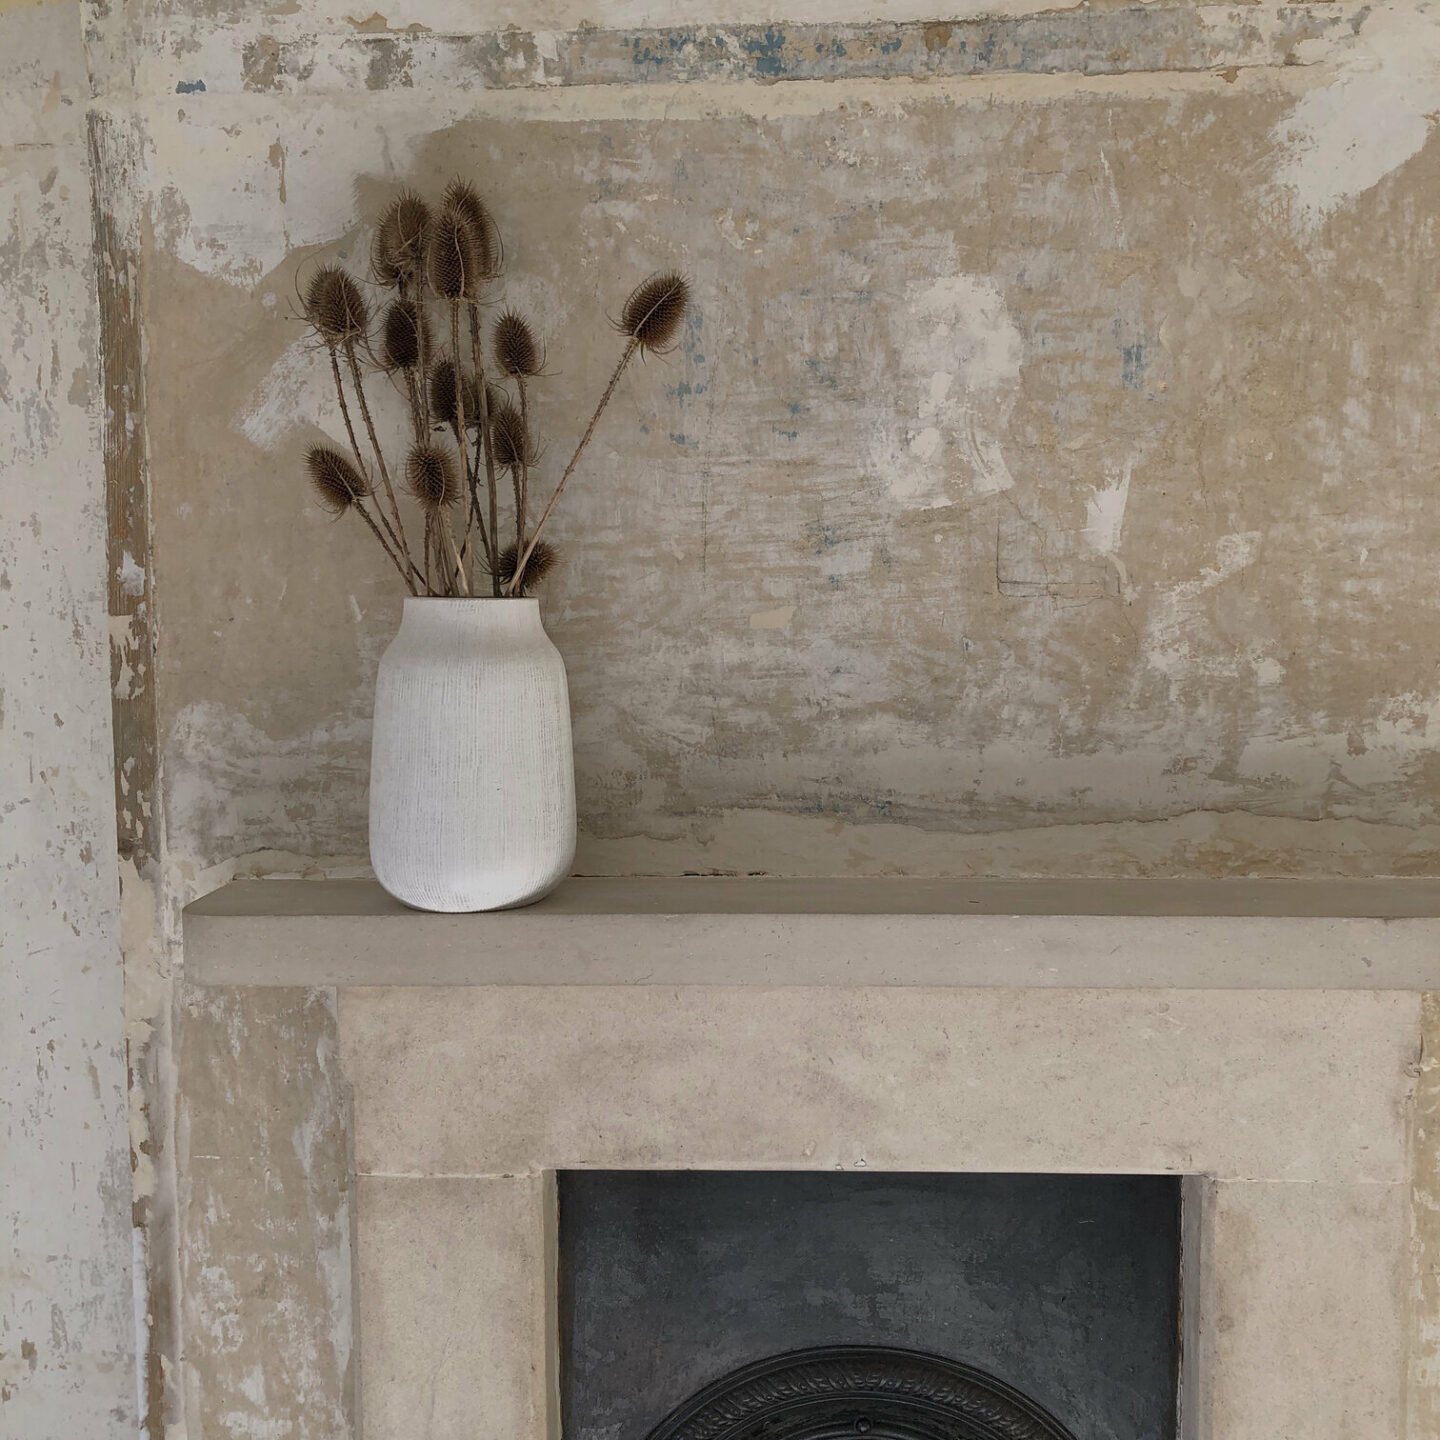 Rustic wallpaper-stripped walls and a vase of teasels